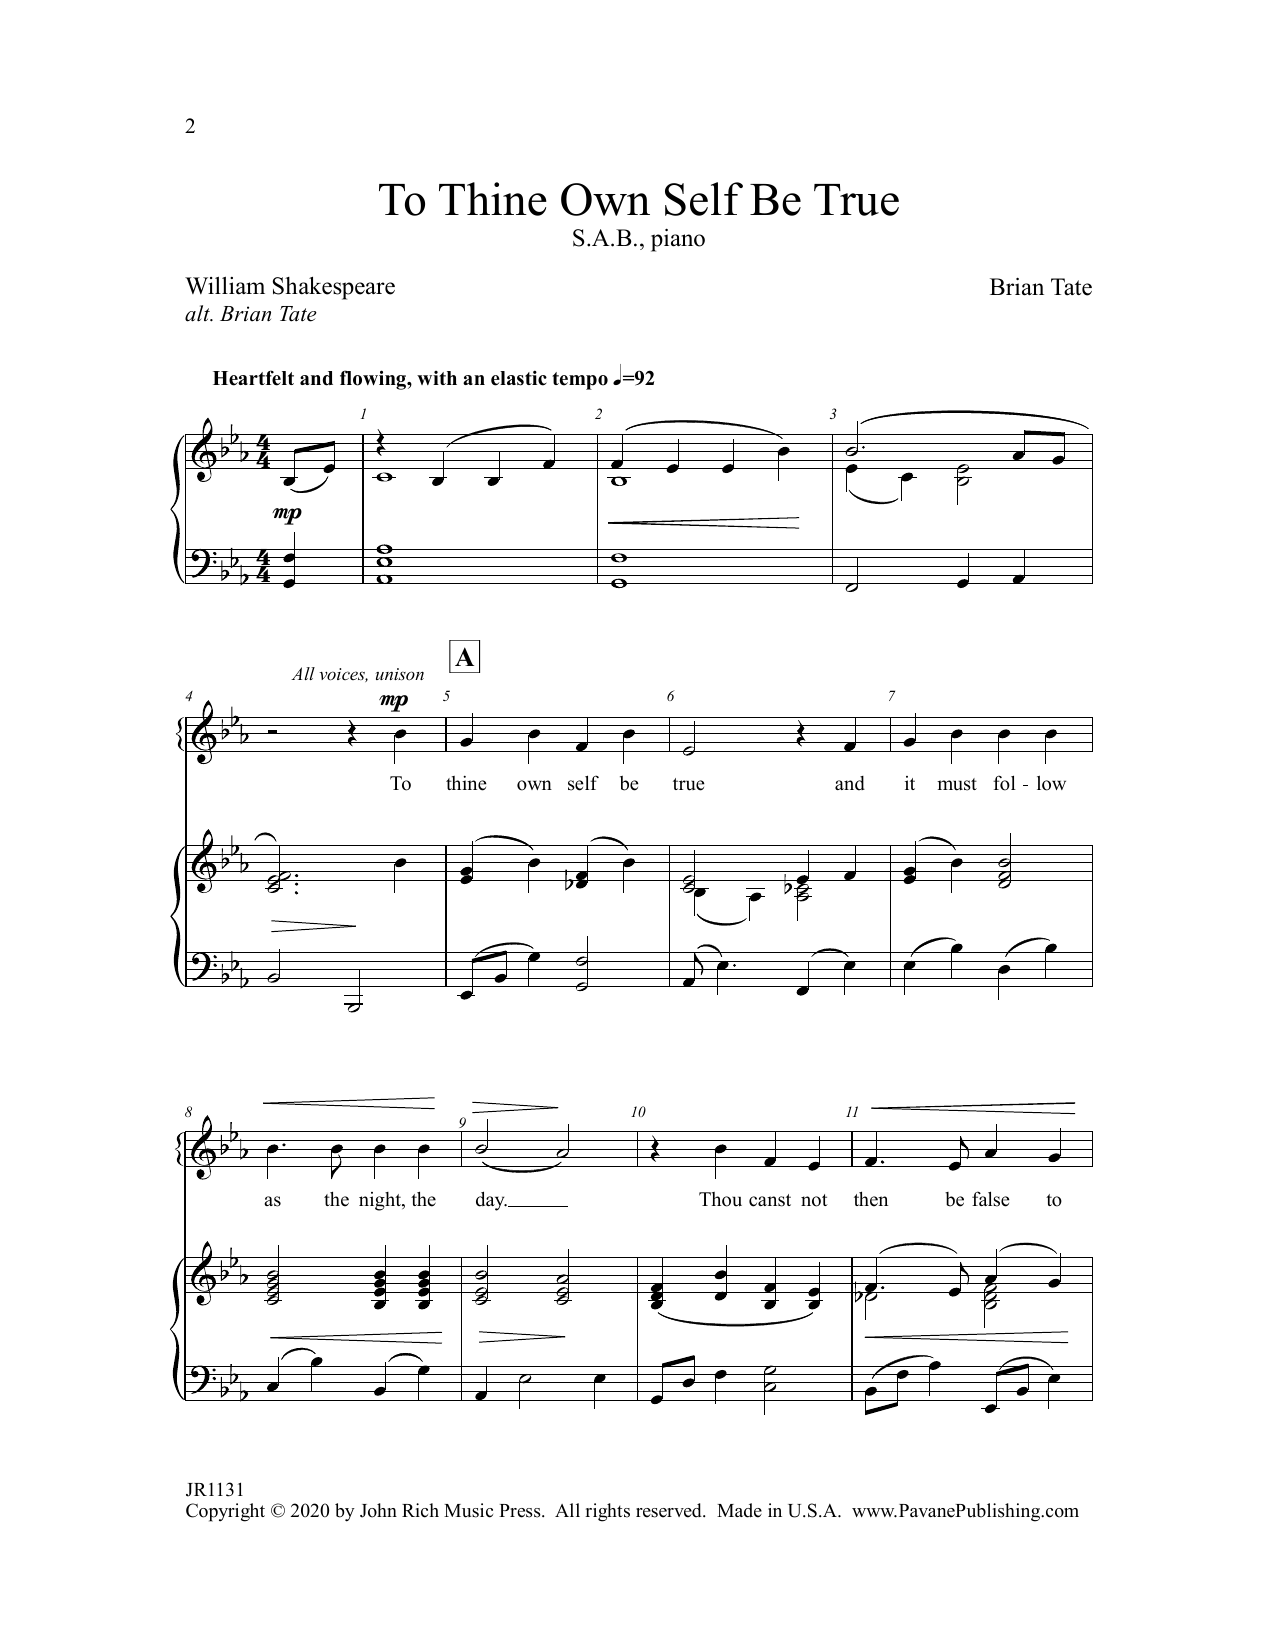 To Thine Own Self Be True Sheet Music